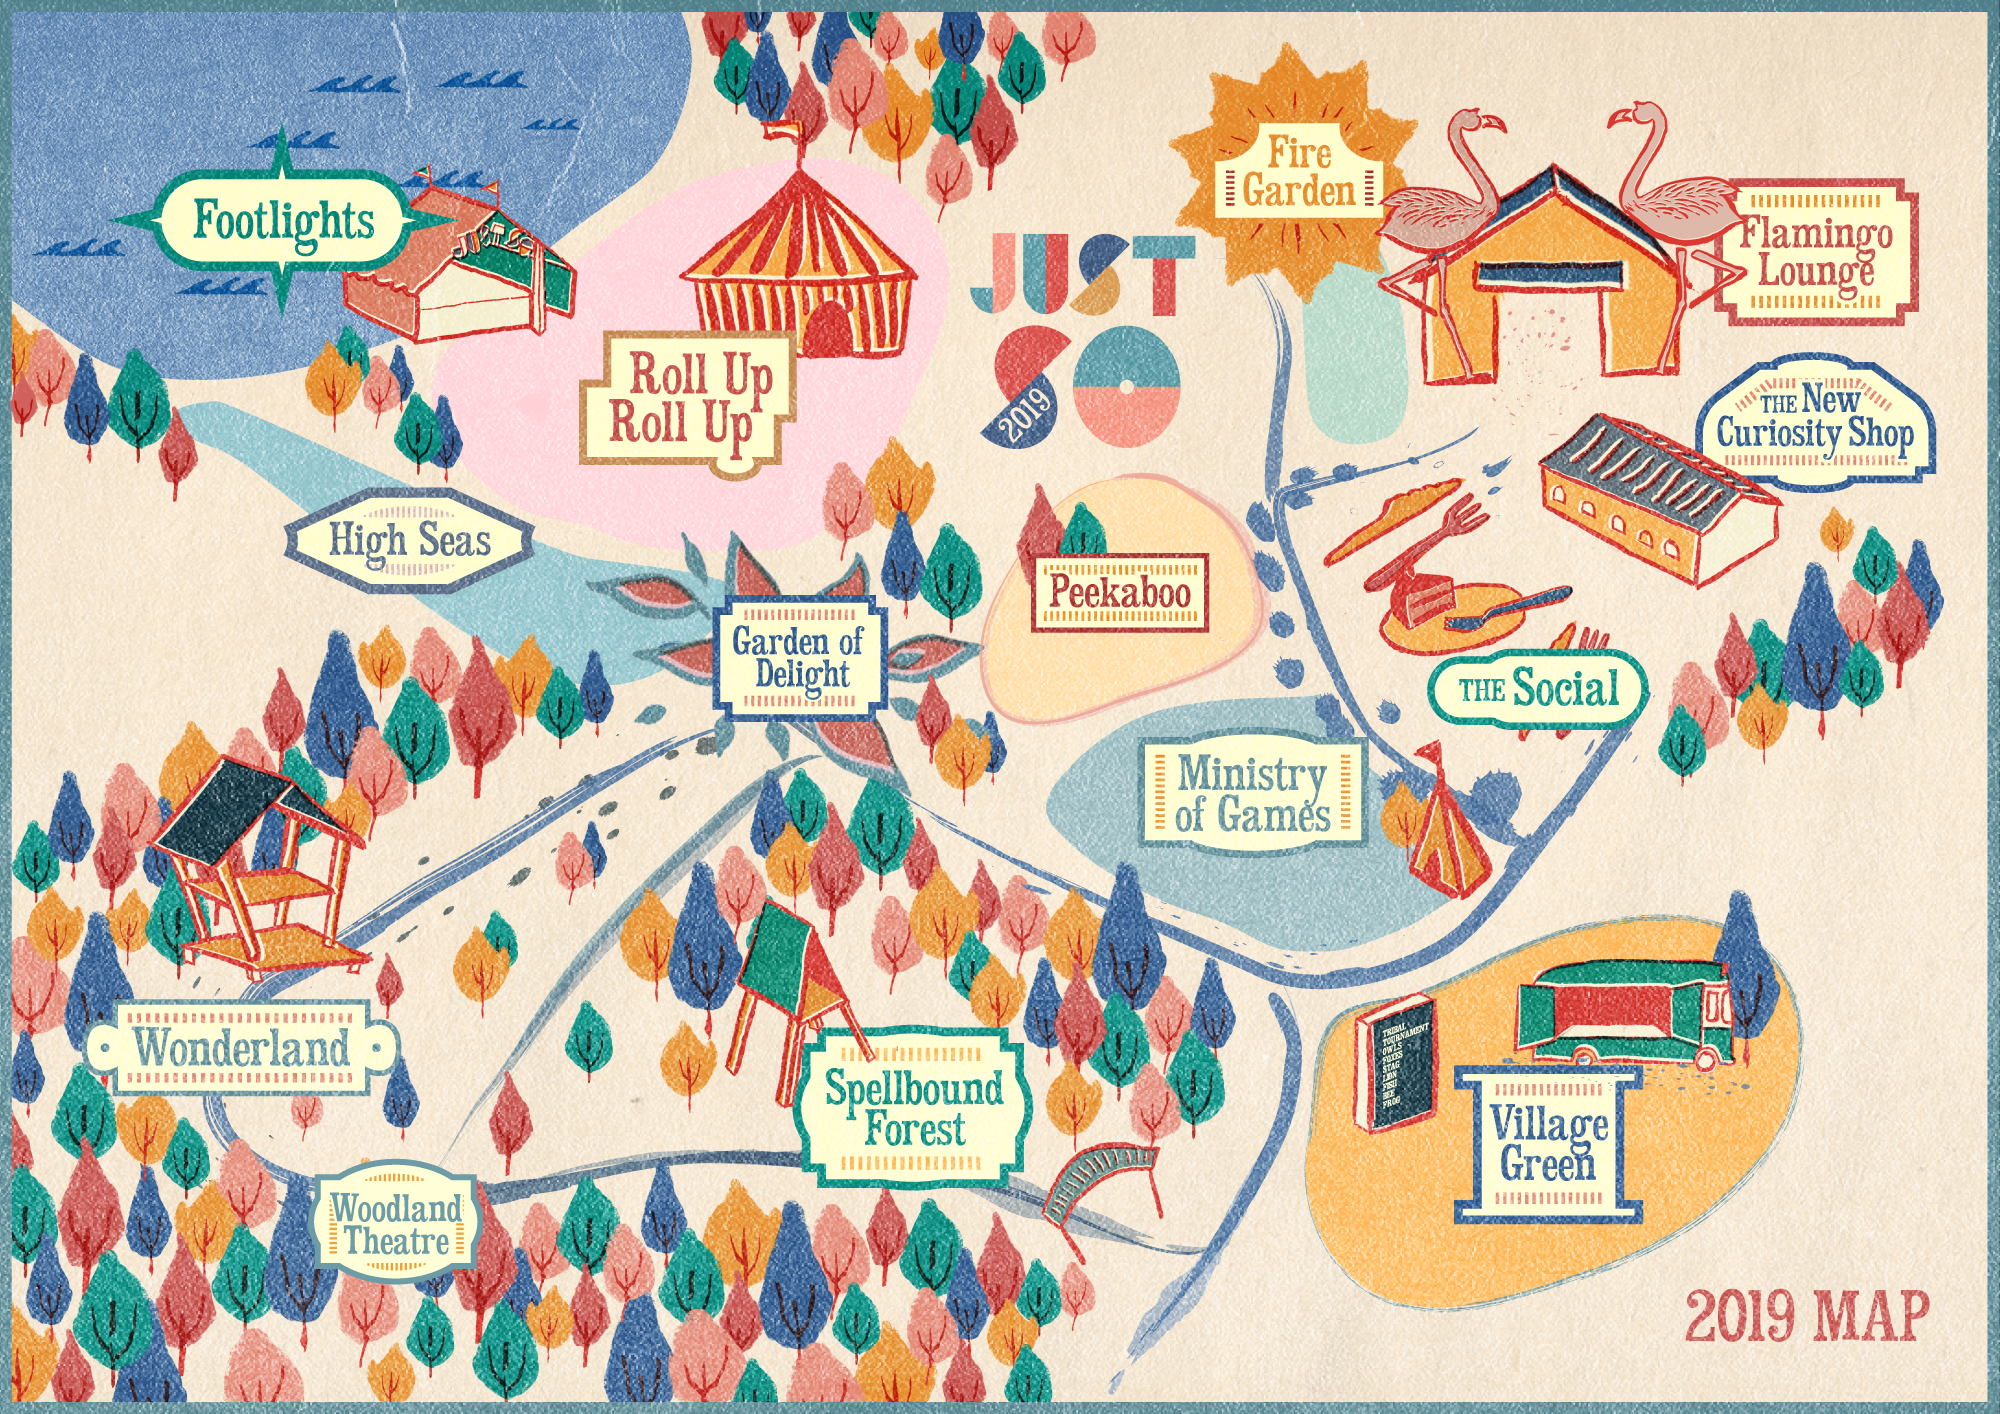 Just So Festival - 2019 Map